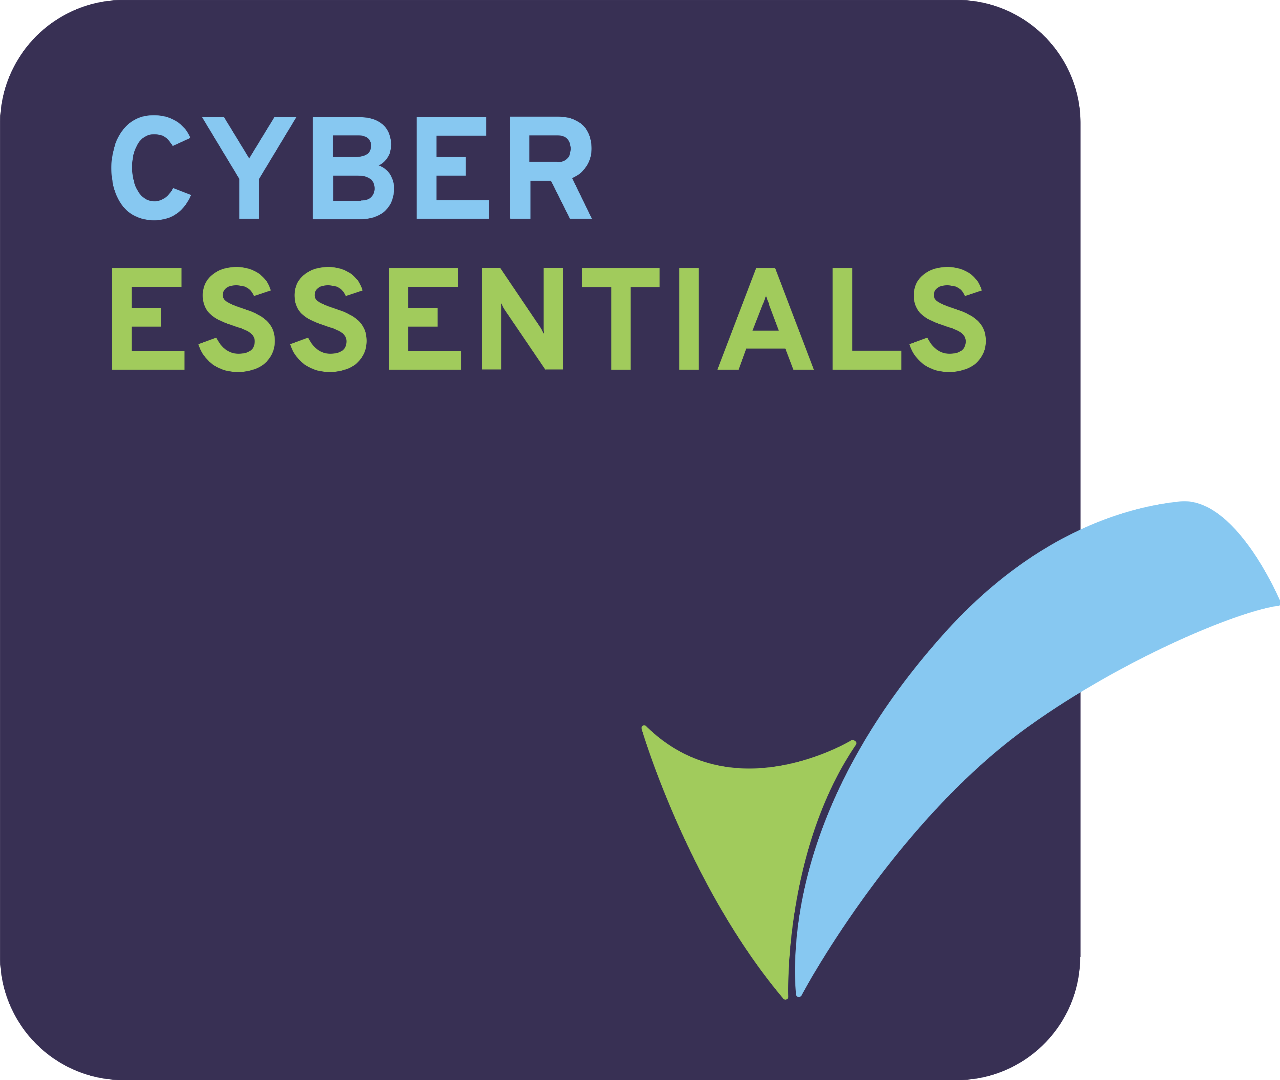 cyber-essentials-logo-huge.png